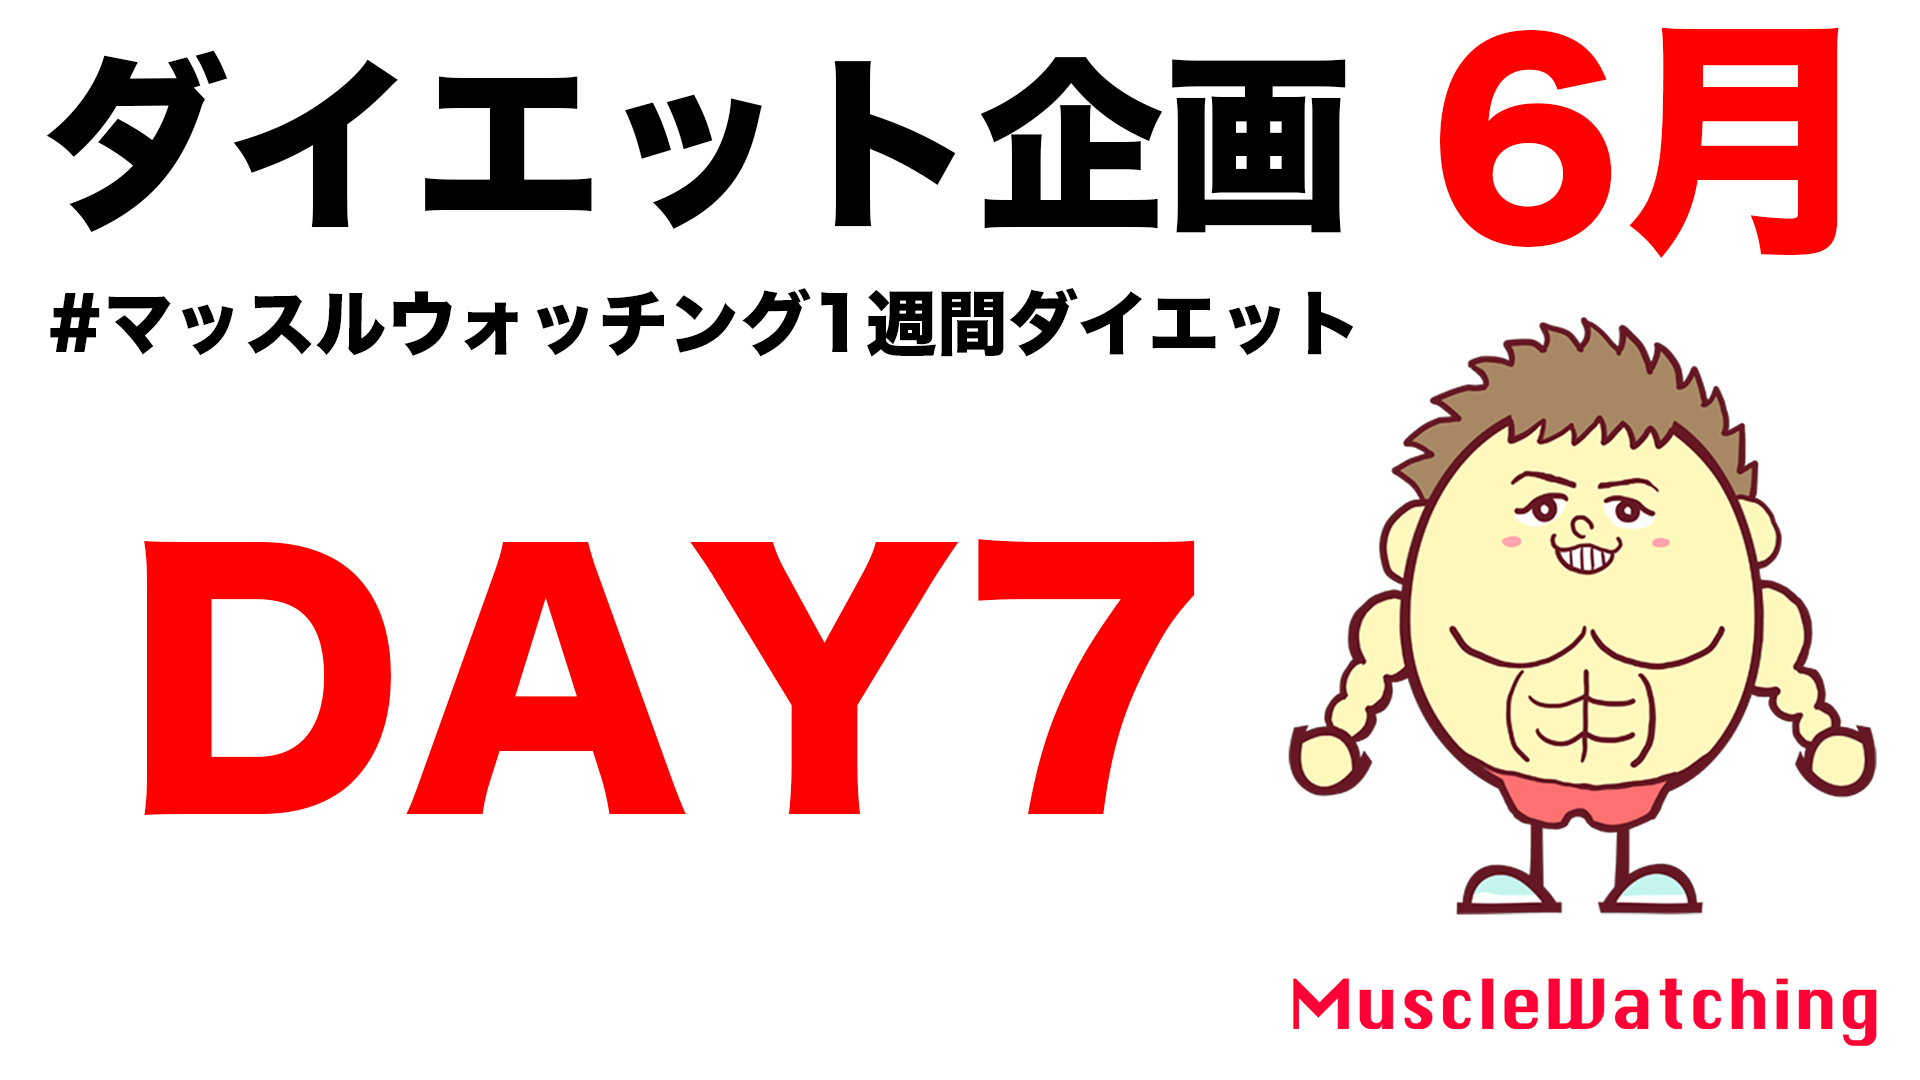 【DAY7】女性限定1週間ダイエット企画 6月| Muscle Watching